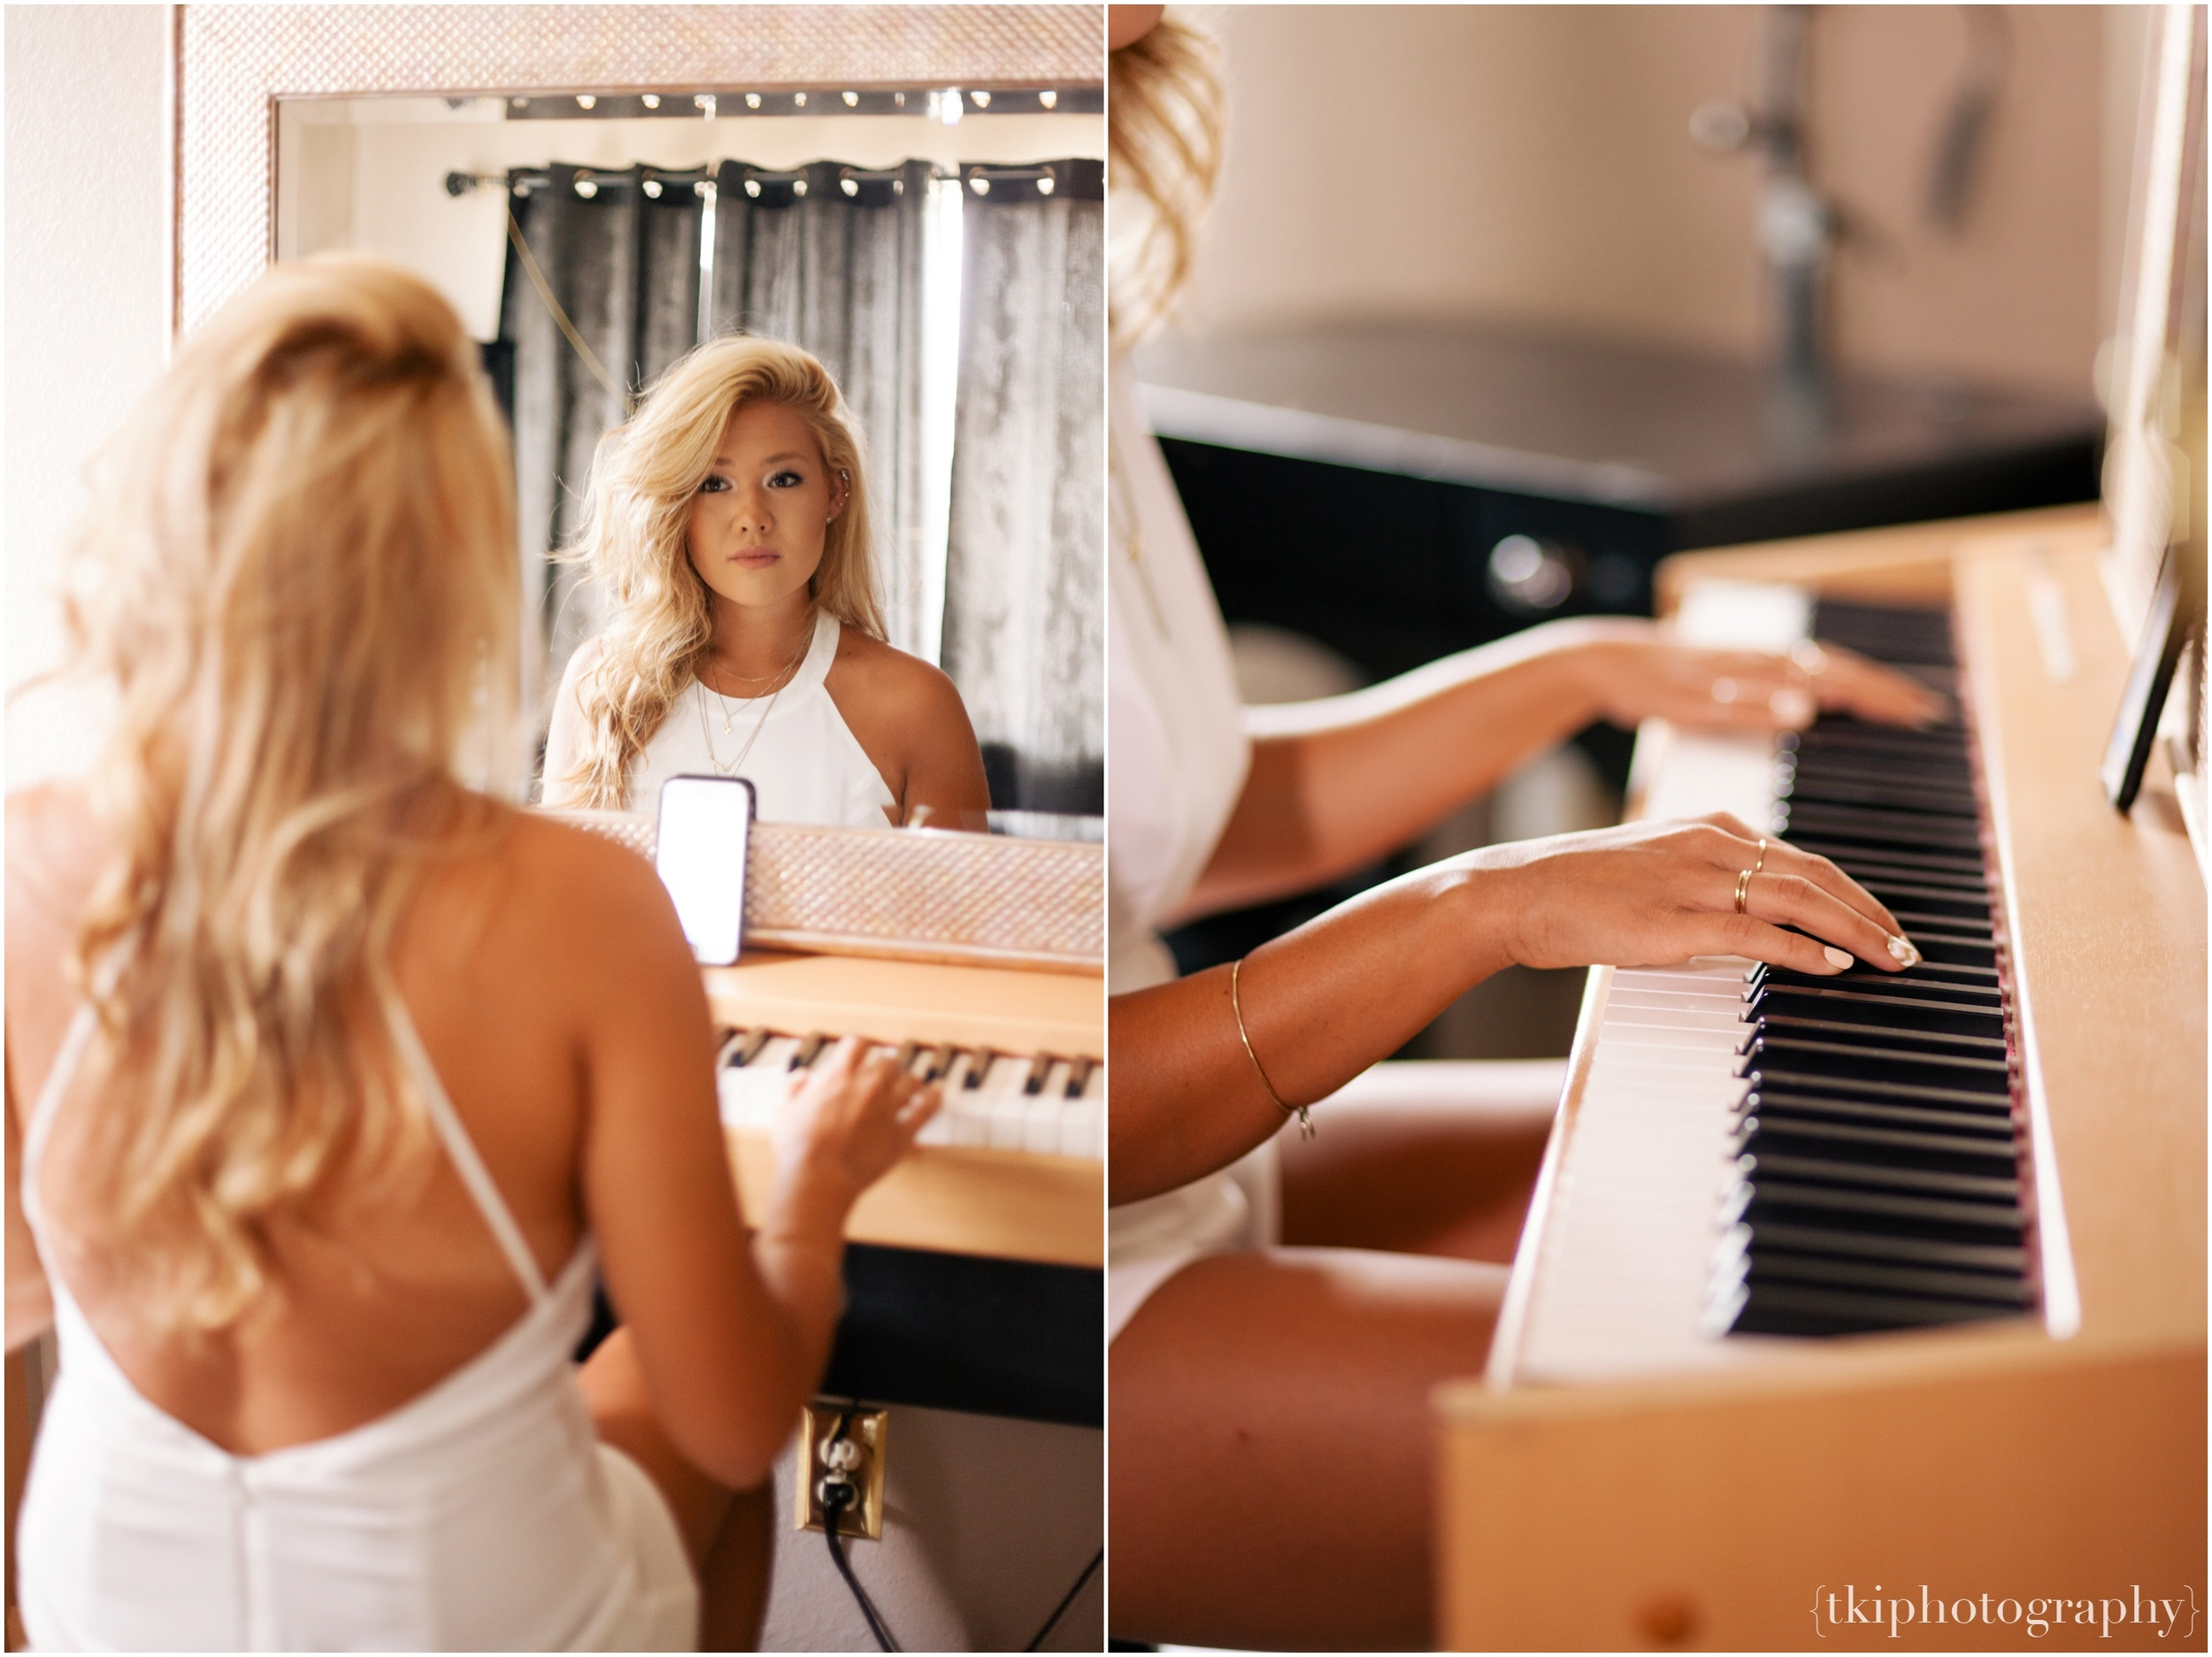 piano-portrait-girl-02.jpg